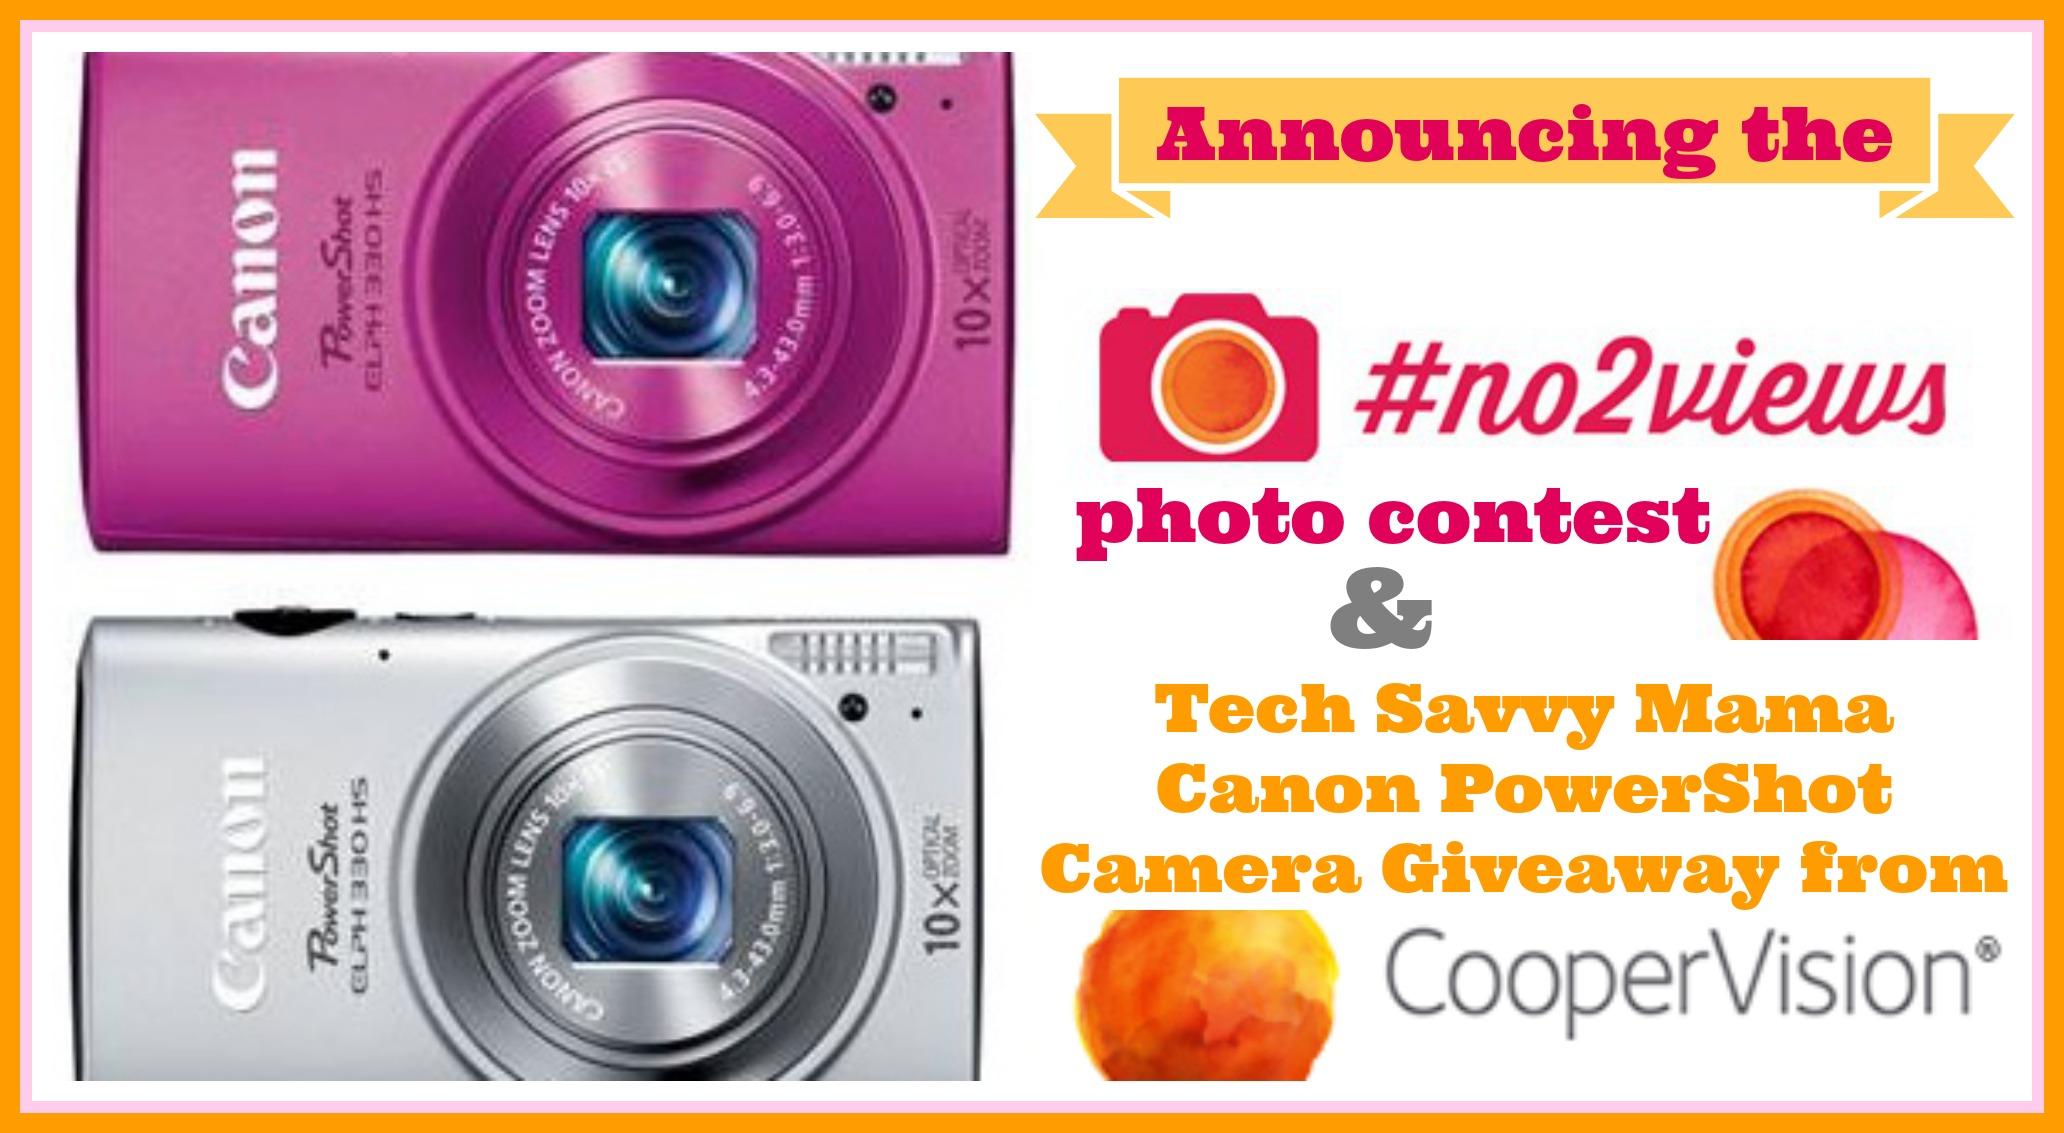 canon camera giveaway 2019 coopervision no2views photo contest w canon powershot 1792